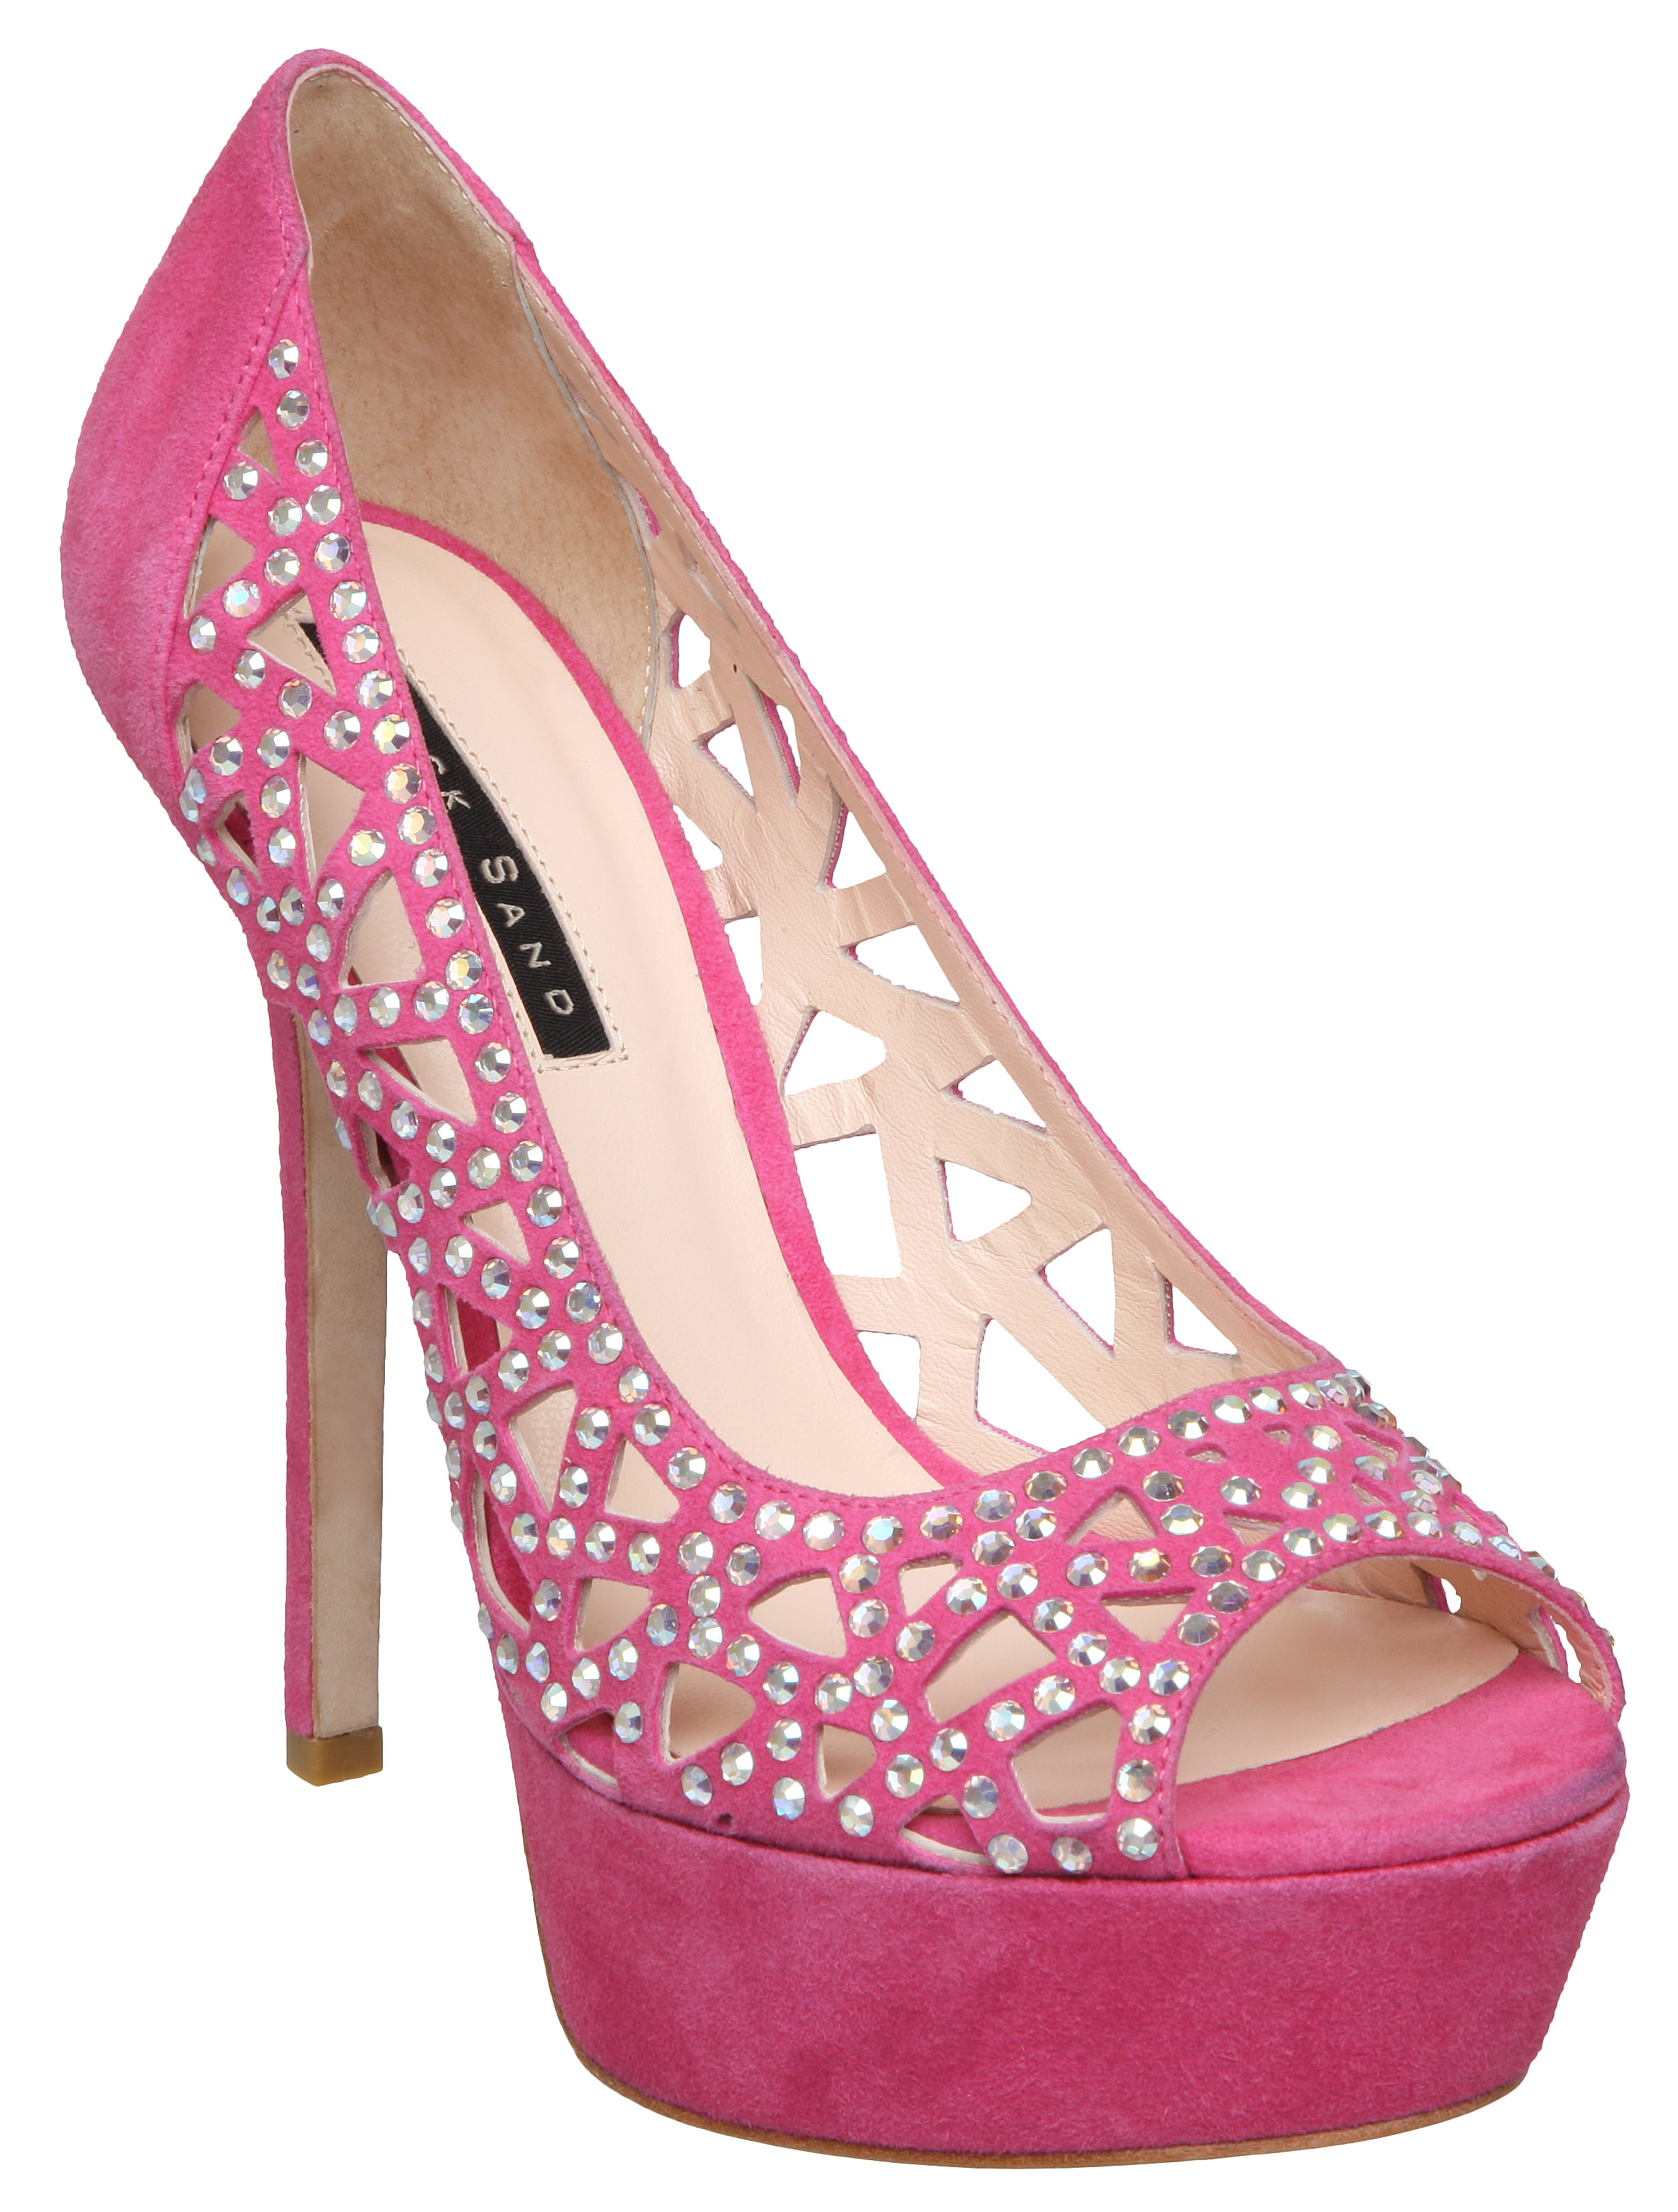 Fuschia Pink Heels Uk